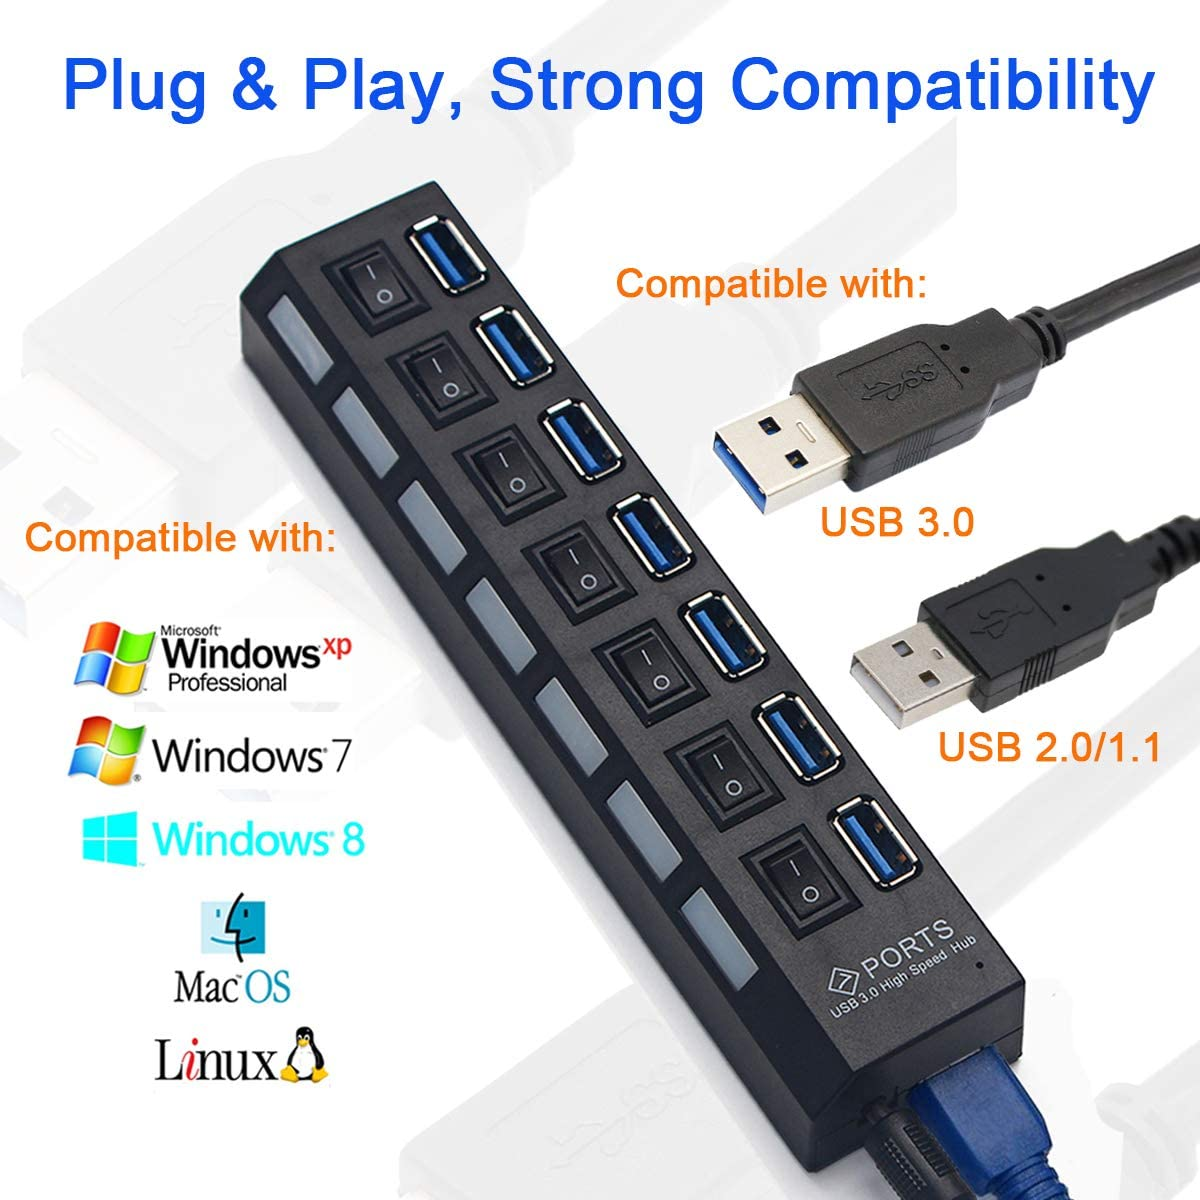 Windyoung USB Hub USB Splitter 3.0 for Laptop Computer USB Hub 3.0 with Power Supply Adapter Extension Cord USB 3.0 Hub with Individual Power Switches and LEDs 7 Ports USB Hub